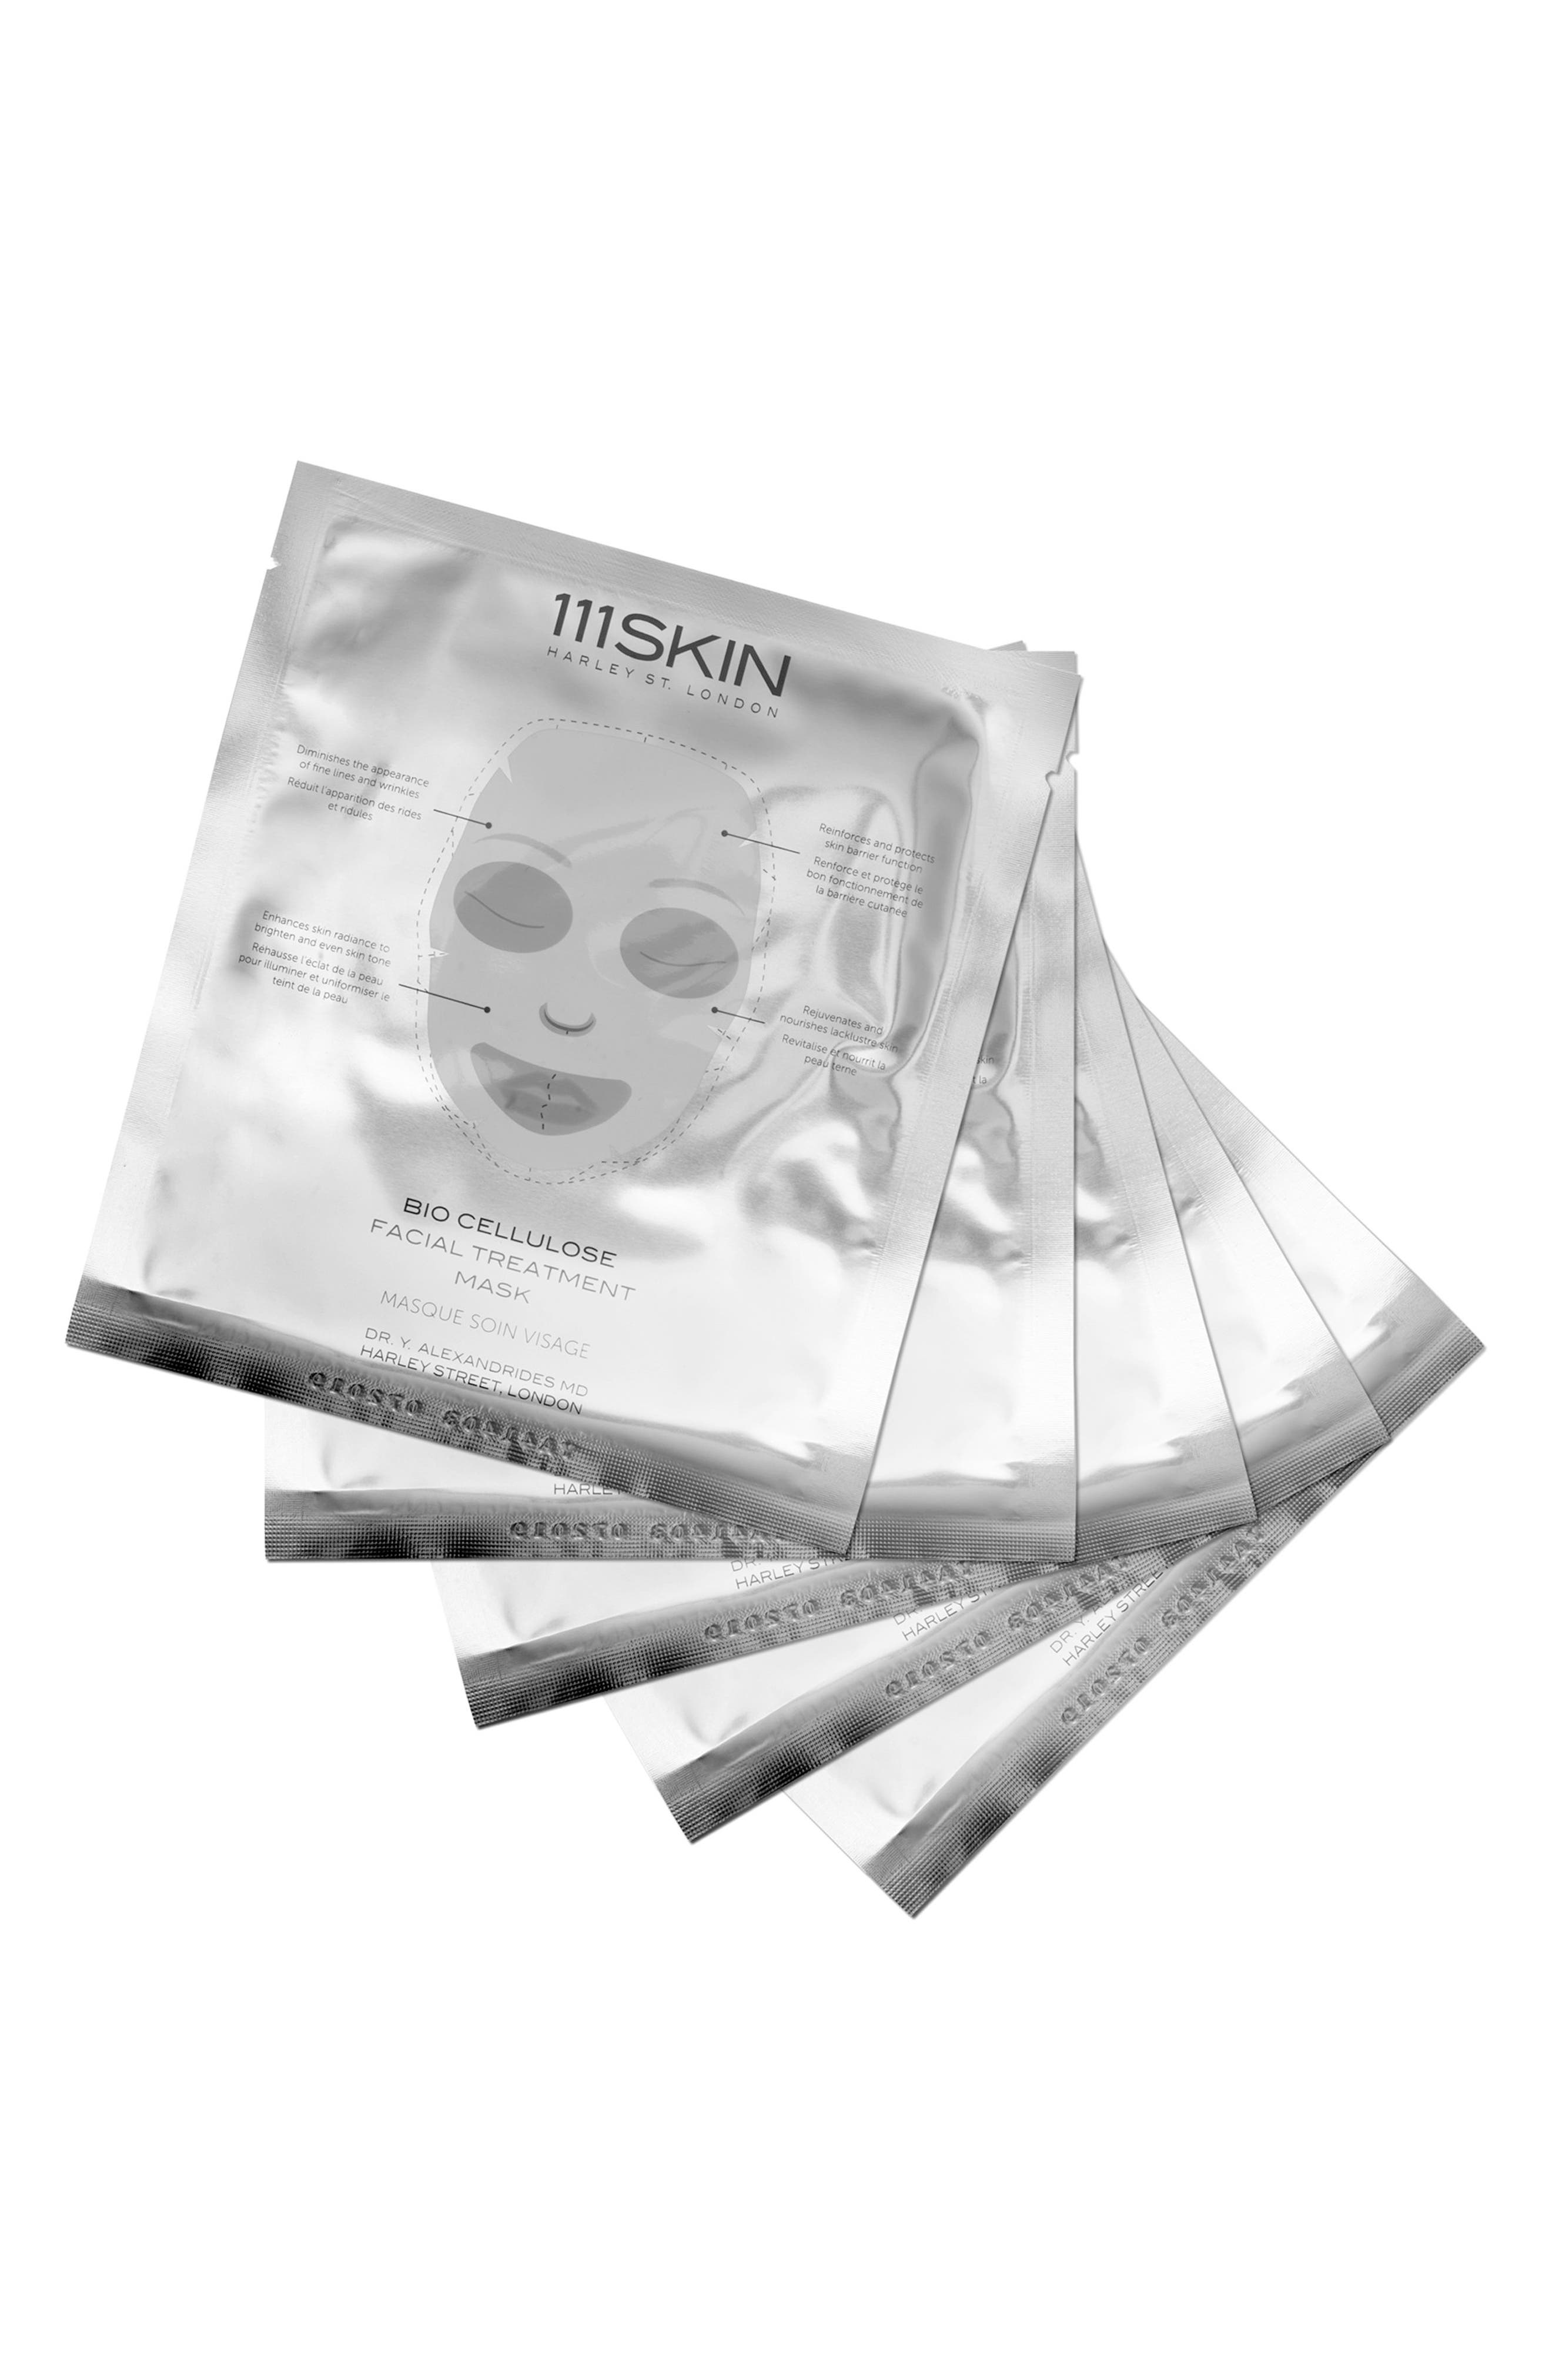 Alternate Image 3  - SPACE.NK.apothecary 111SKIN Bio Cellulose Facial Treatment Mask